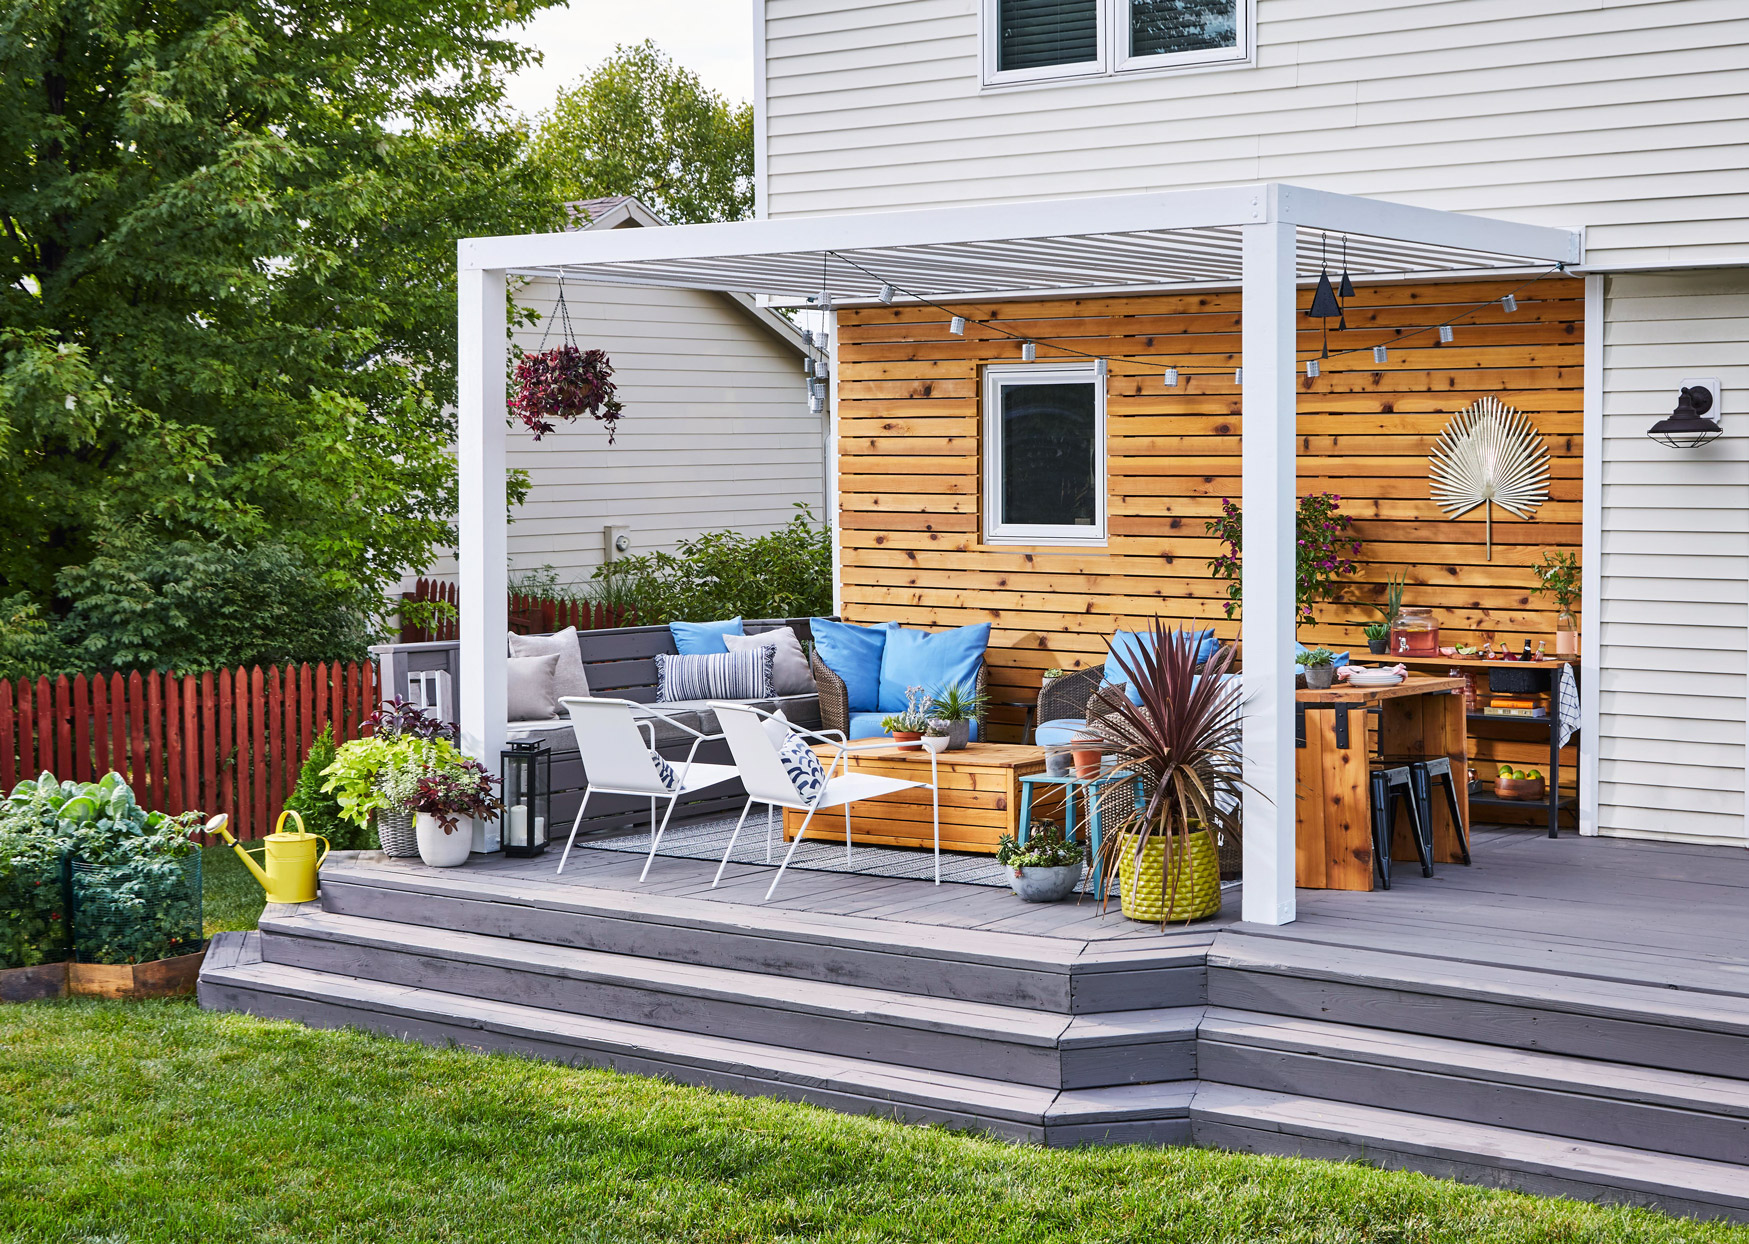 attached pergola ideas to boost shade